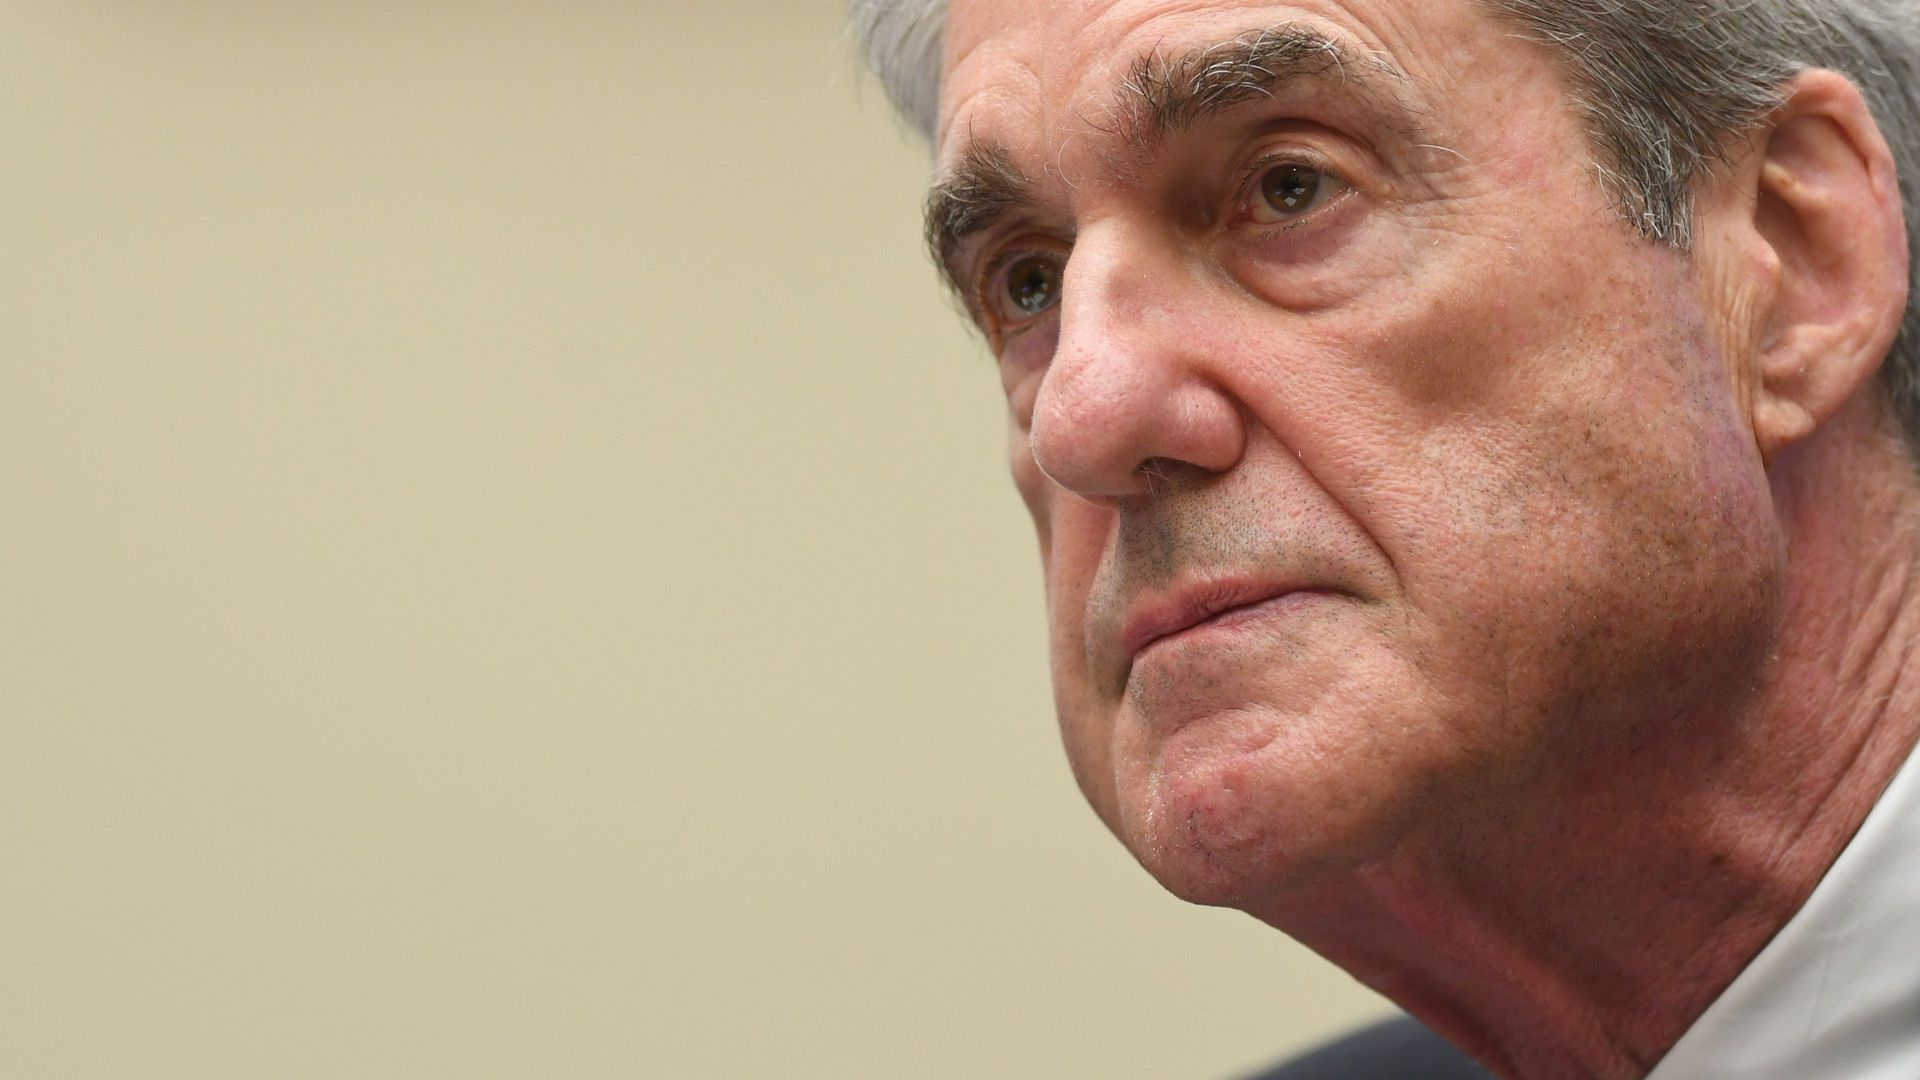 This image shows a close-up of Mueller